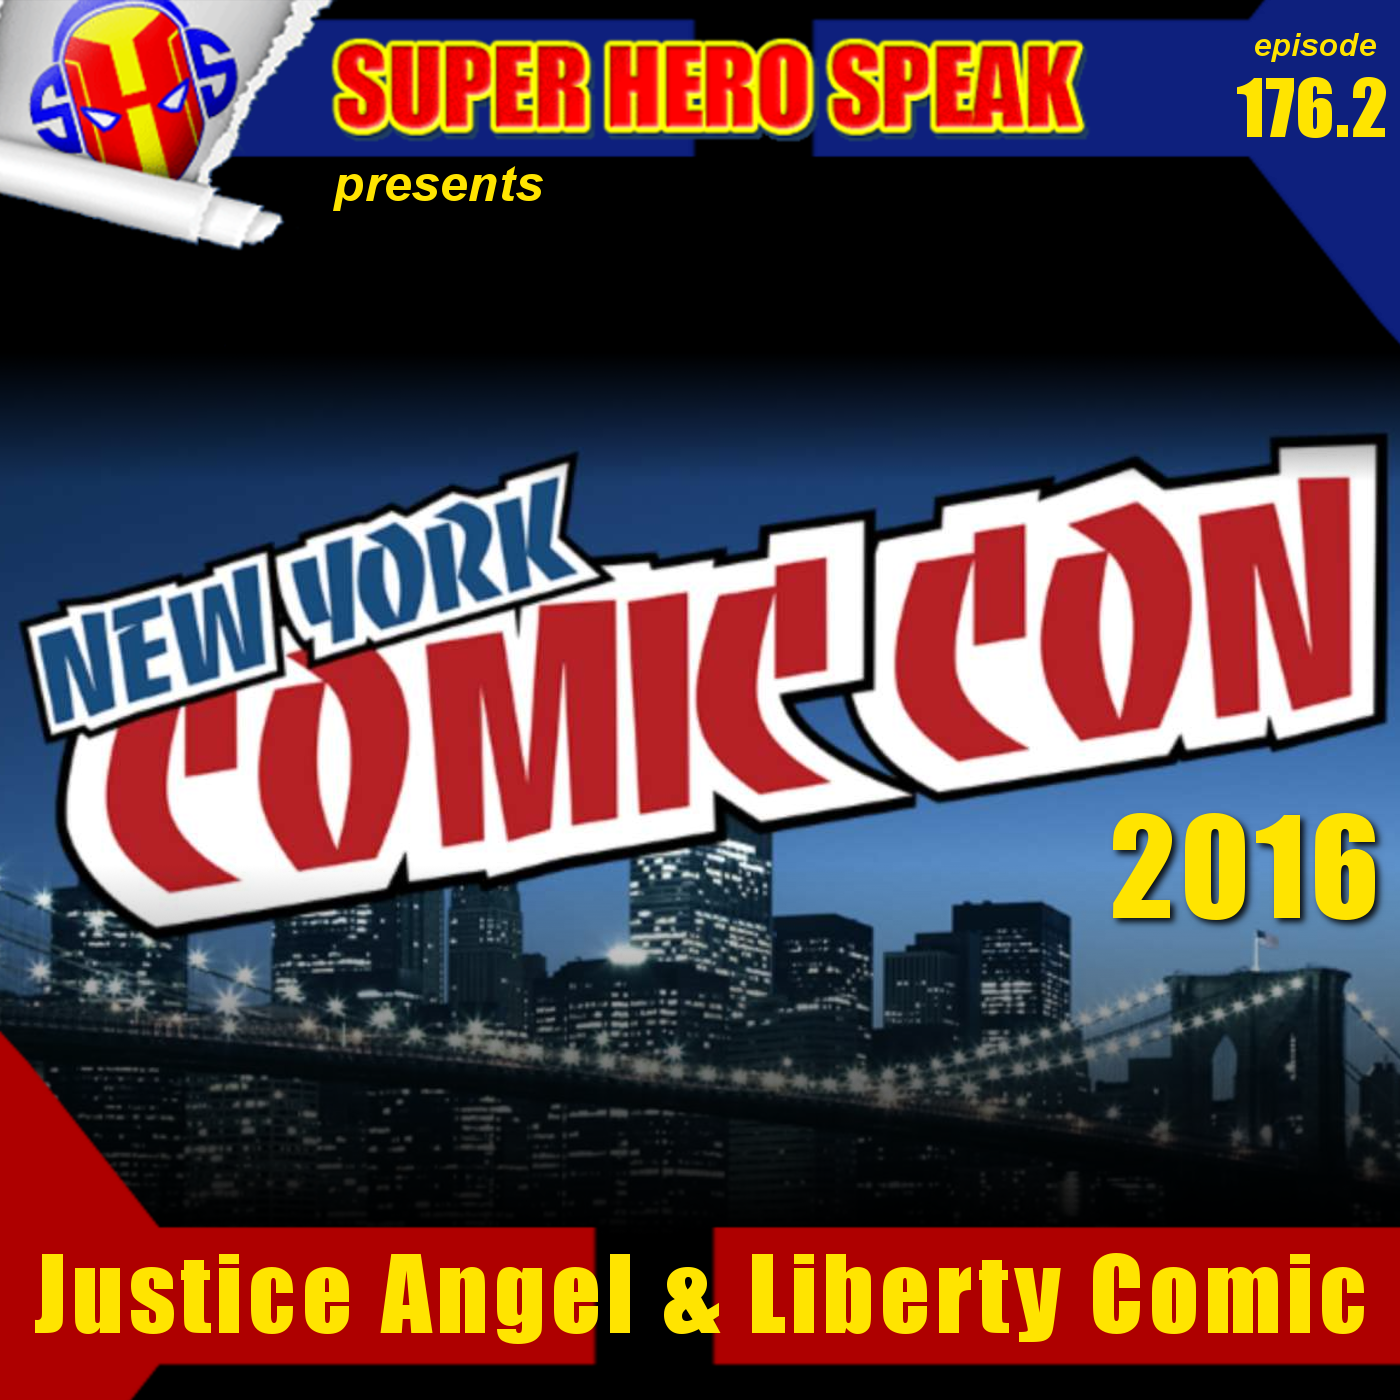 #176.2: Justice Angel & Liberty Comic